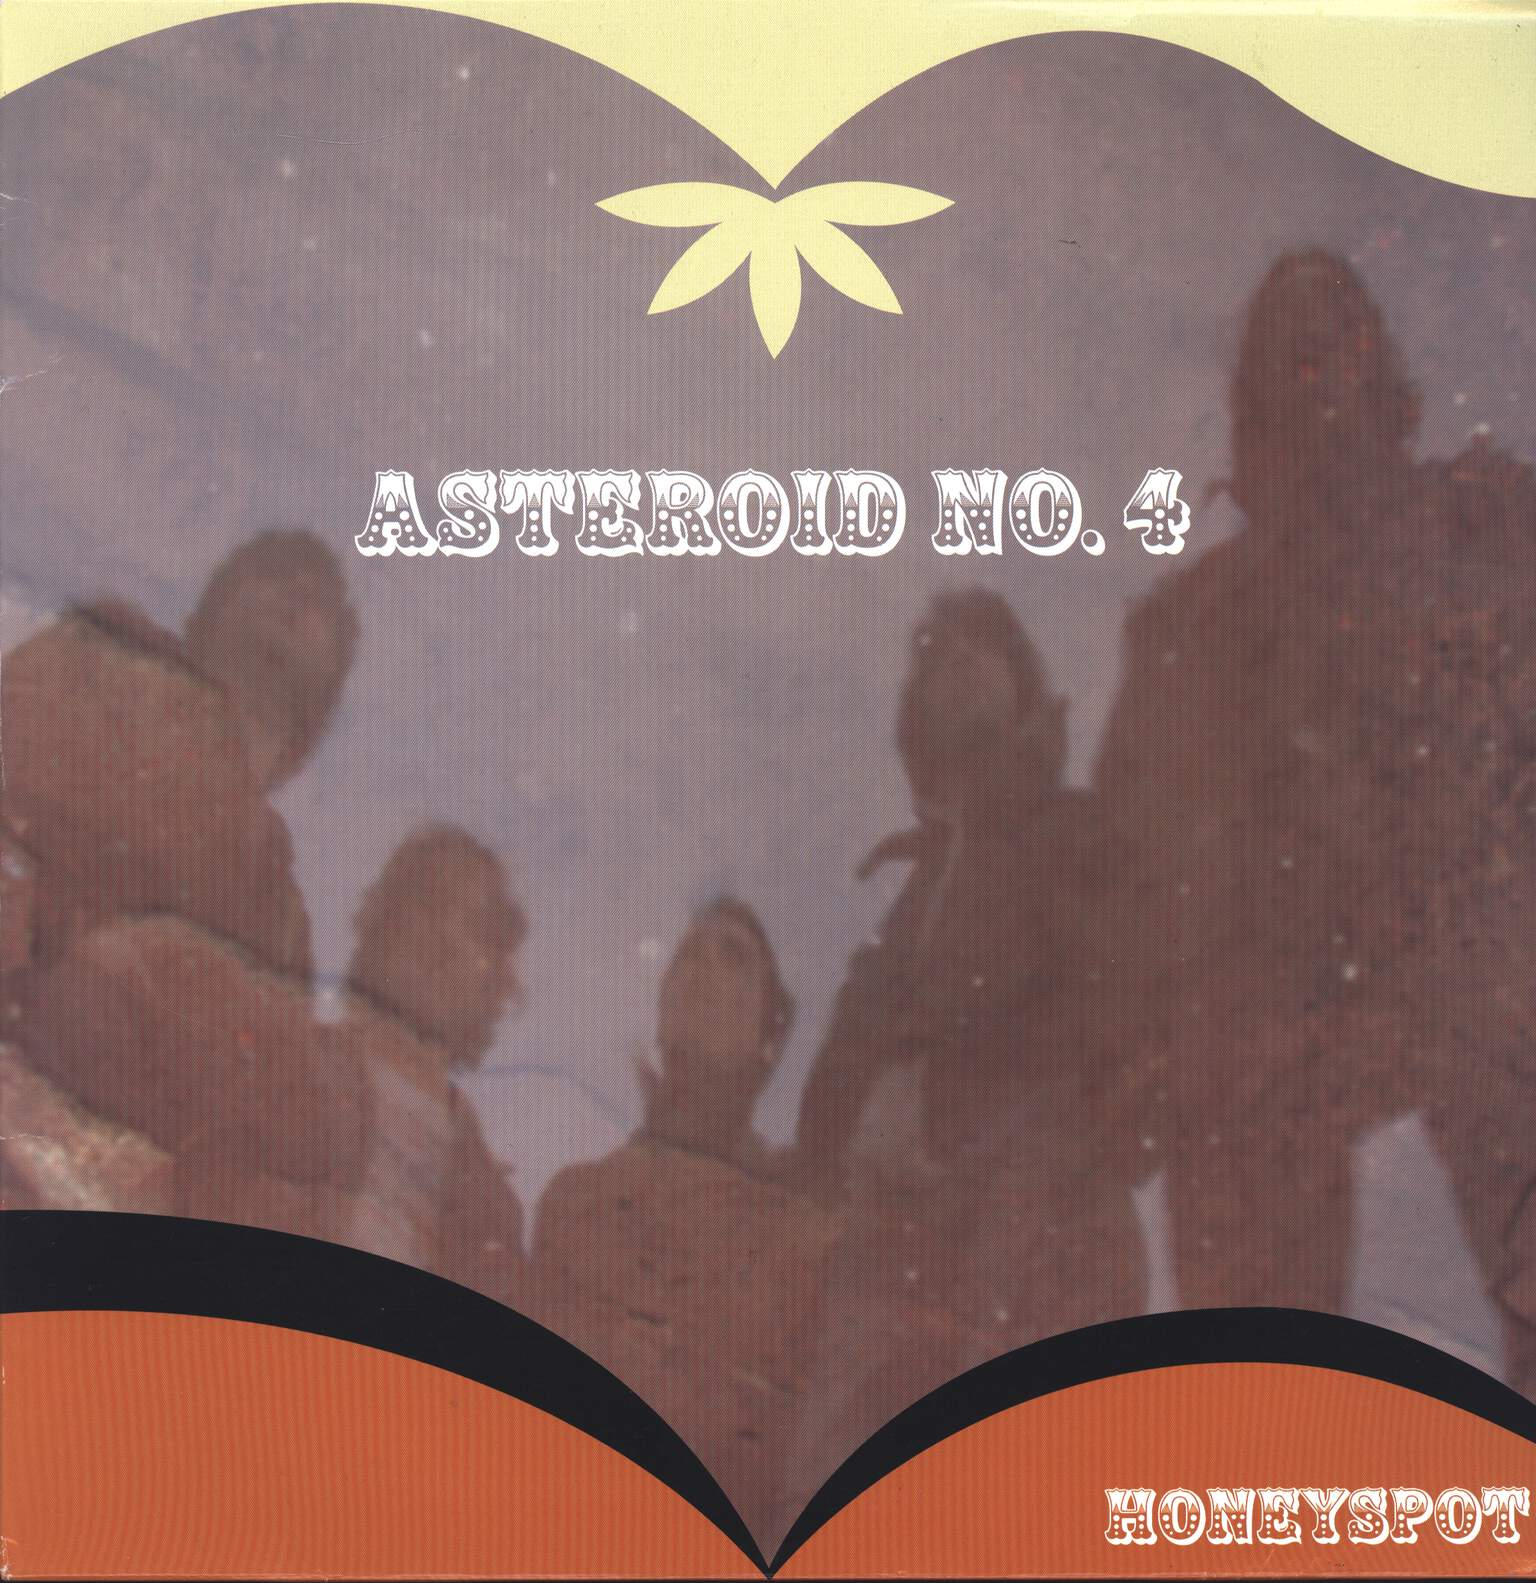 Asteroid #4: Honeyspot, LP (Vinyl)